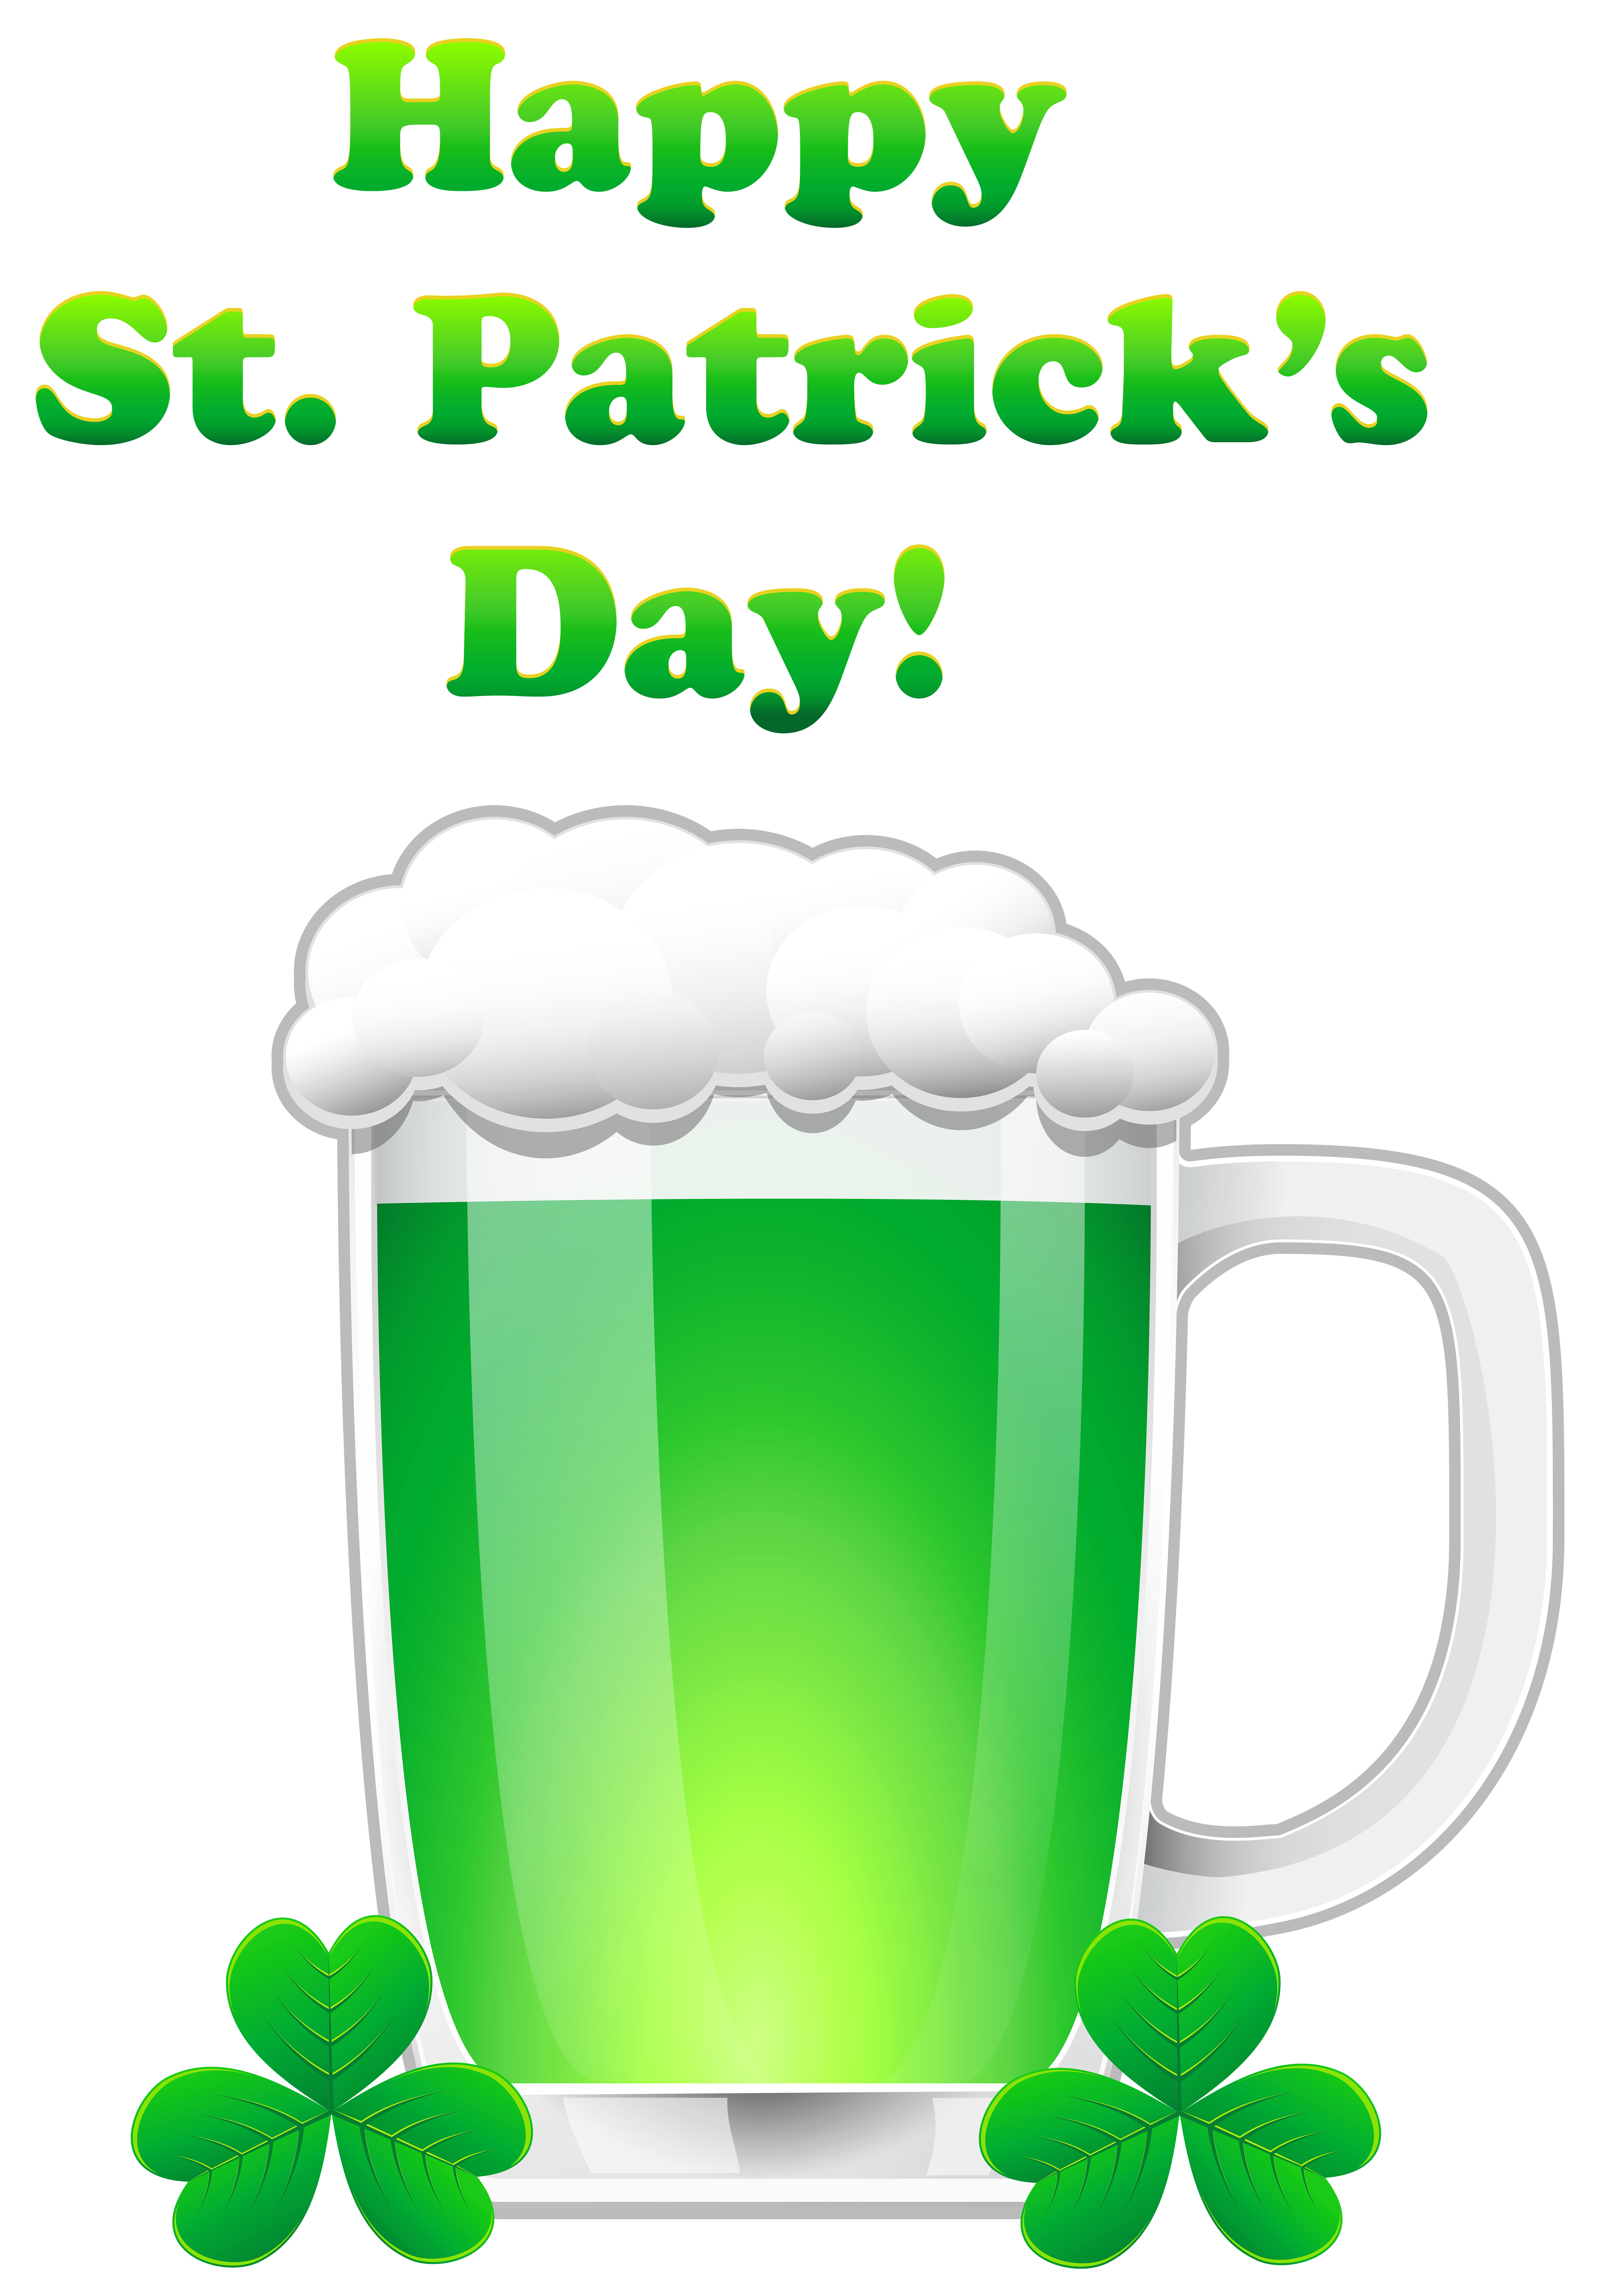 Green Day clipart transparent St Art Beer View Patrick's